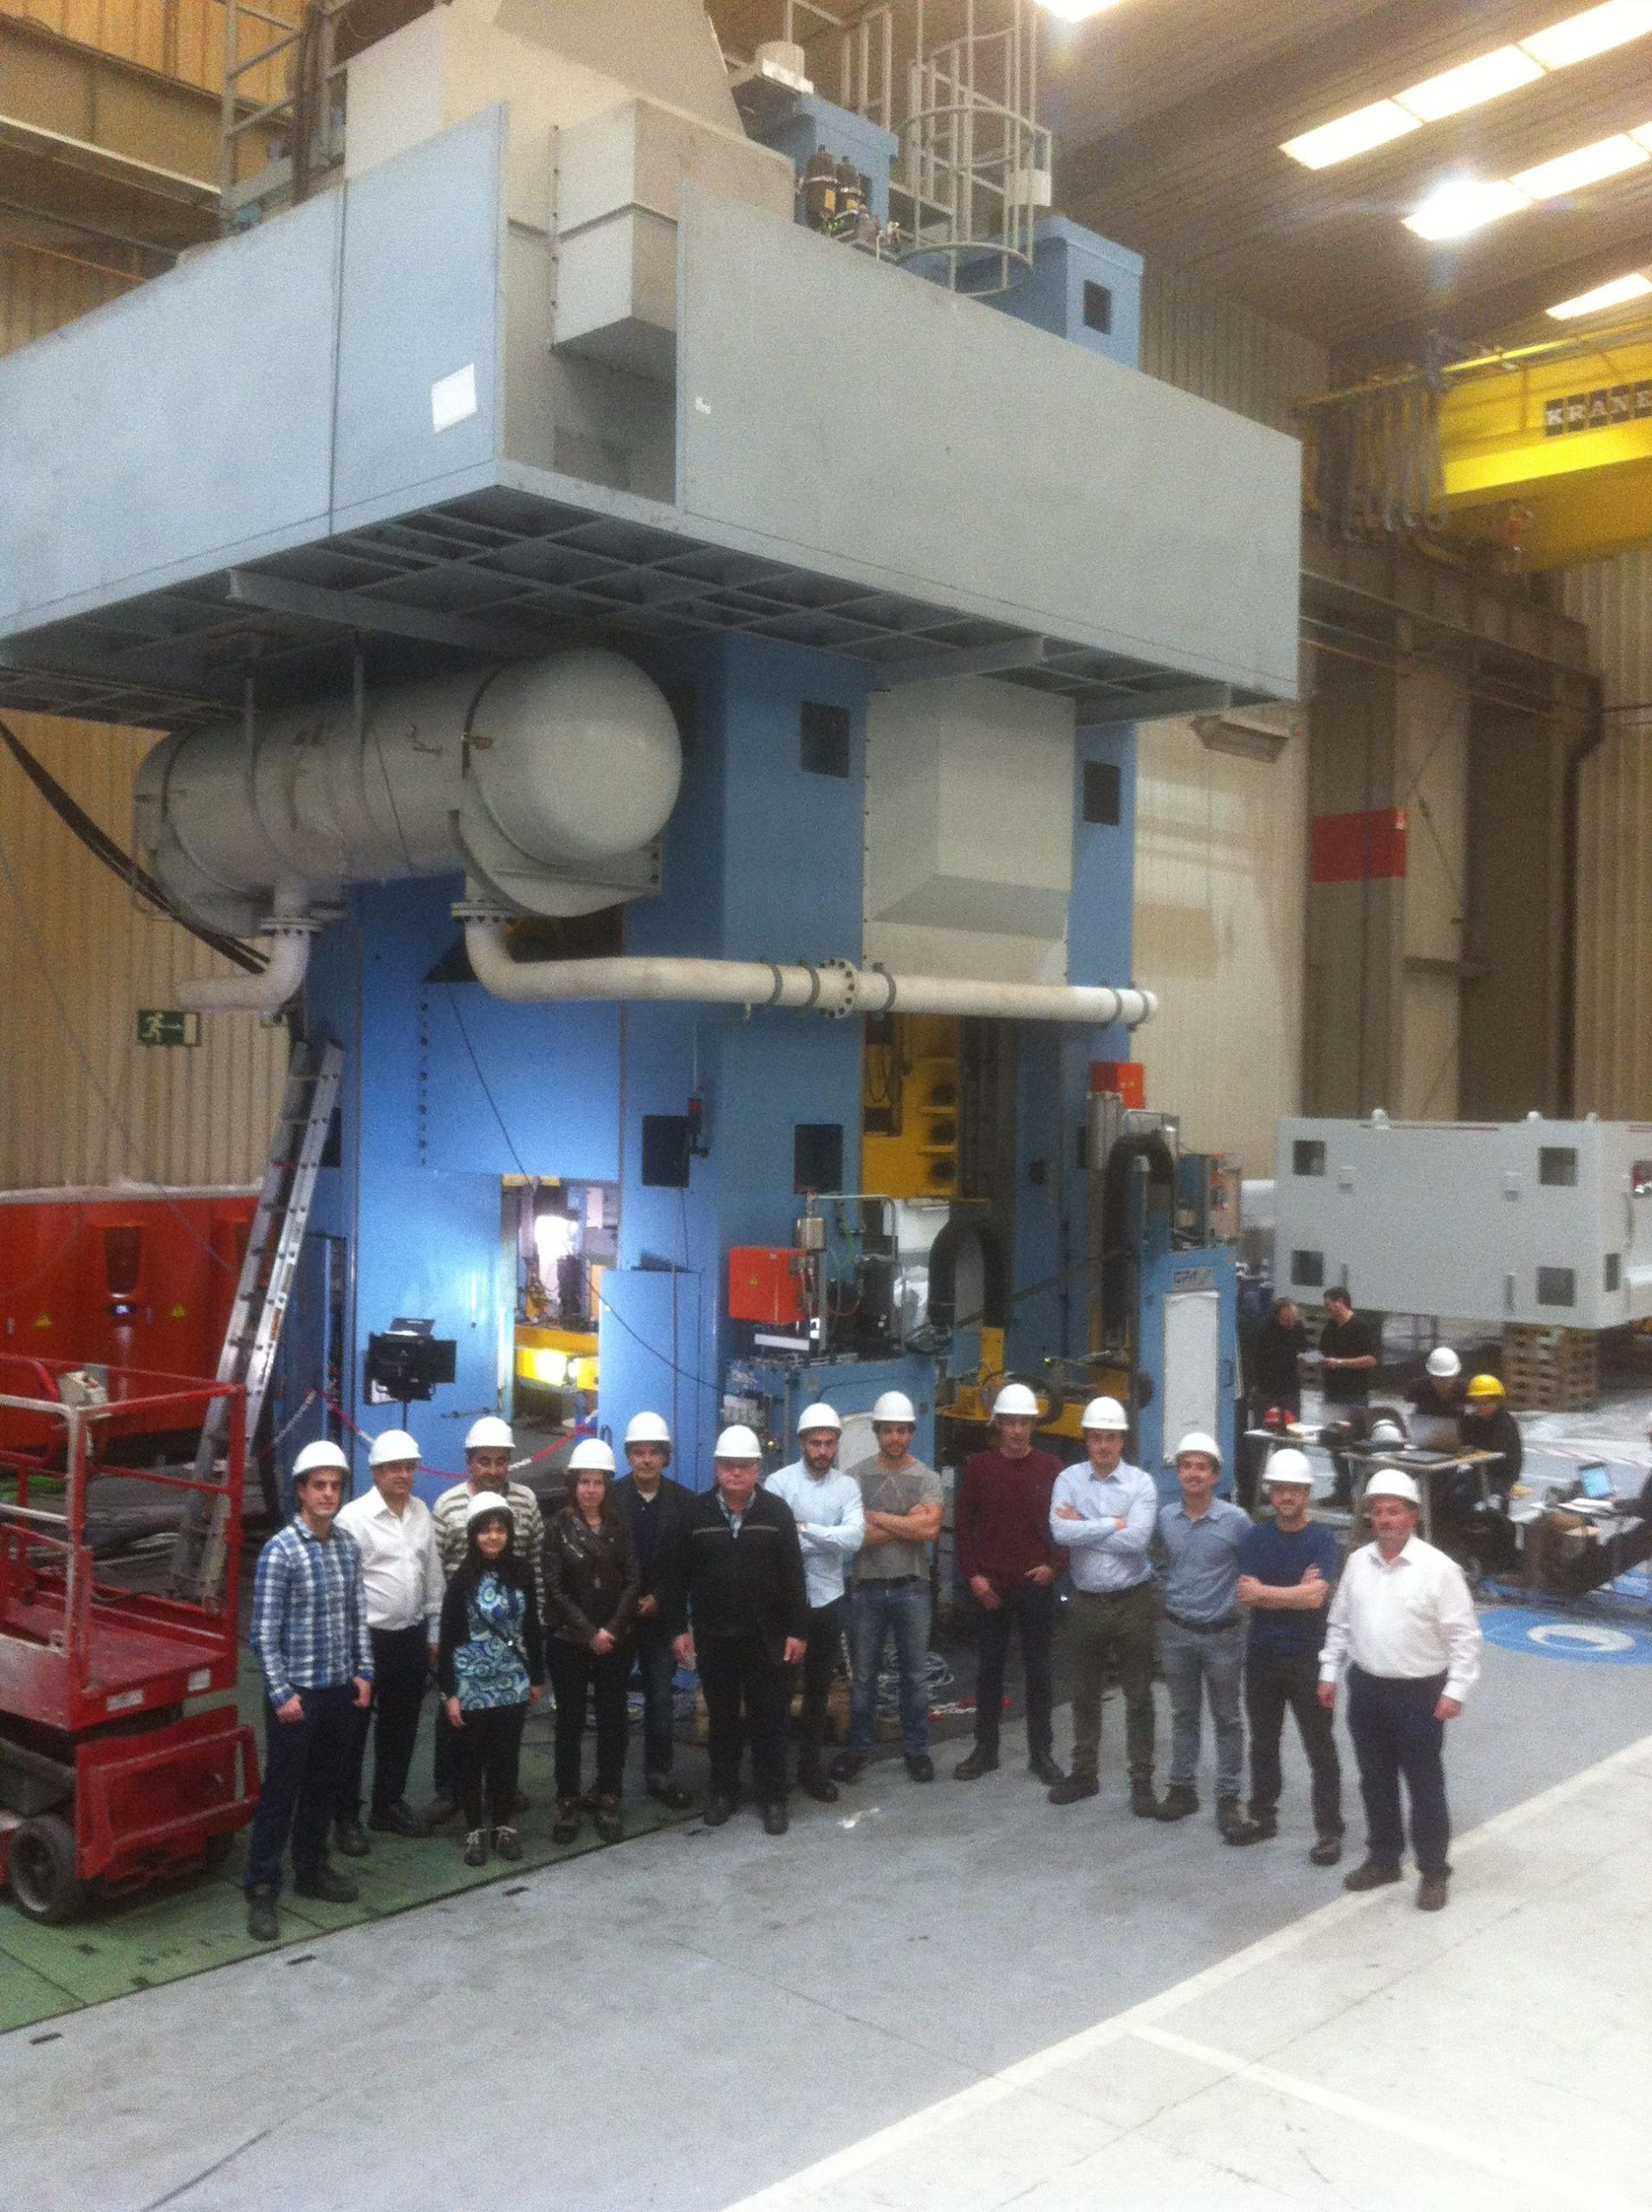 Fagor Arrasate event: Successful Open House to showcase the 2000-ton transfer press for FORGING